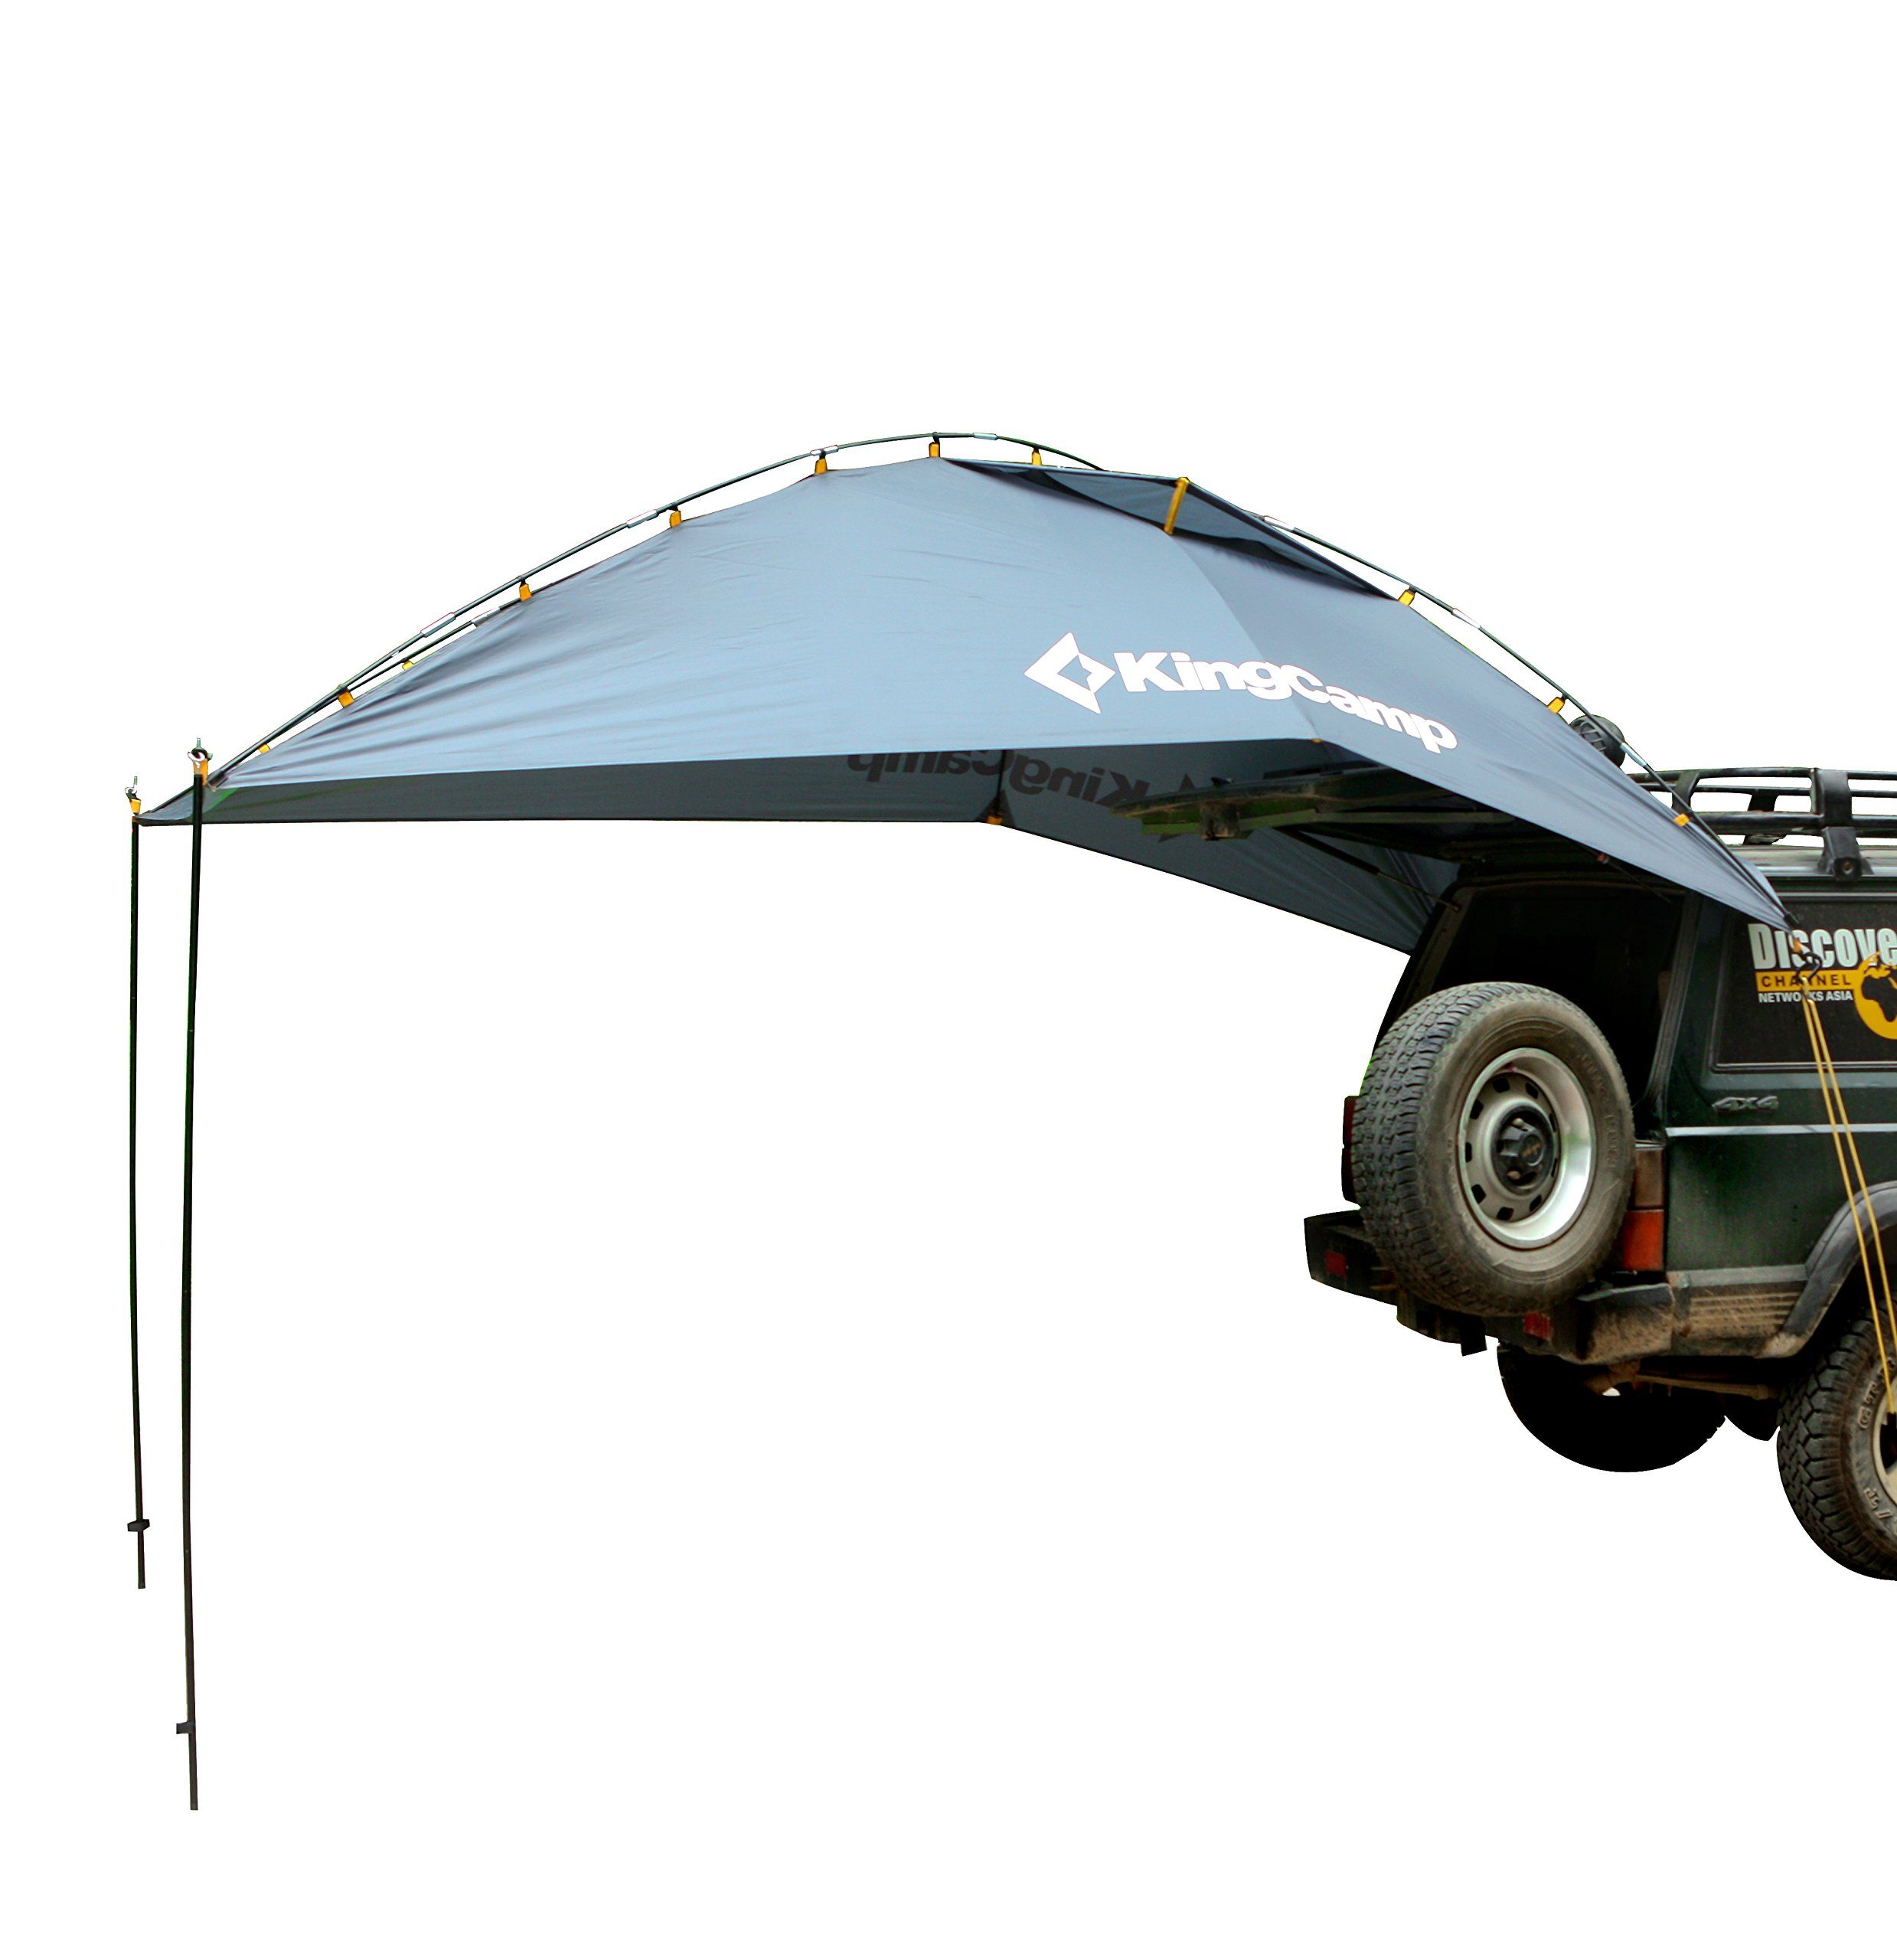 KingCamp Awning Sun Shelter Auto Canopy Camper Trailer Tent Roof Top for Beach, SUV, MPV, Hatchback, Minivan, Sedan, Camping, Outdoor, Anti-UV Tents, Waterproof, Portable by KingCamp